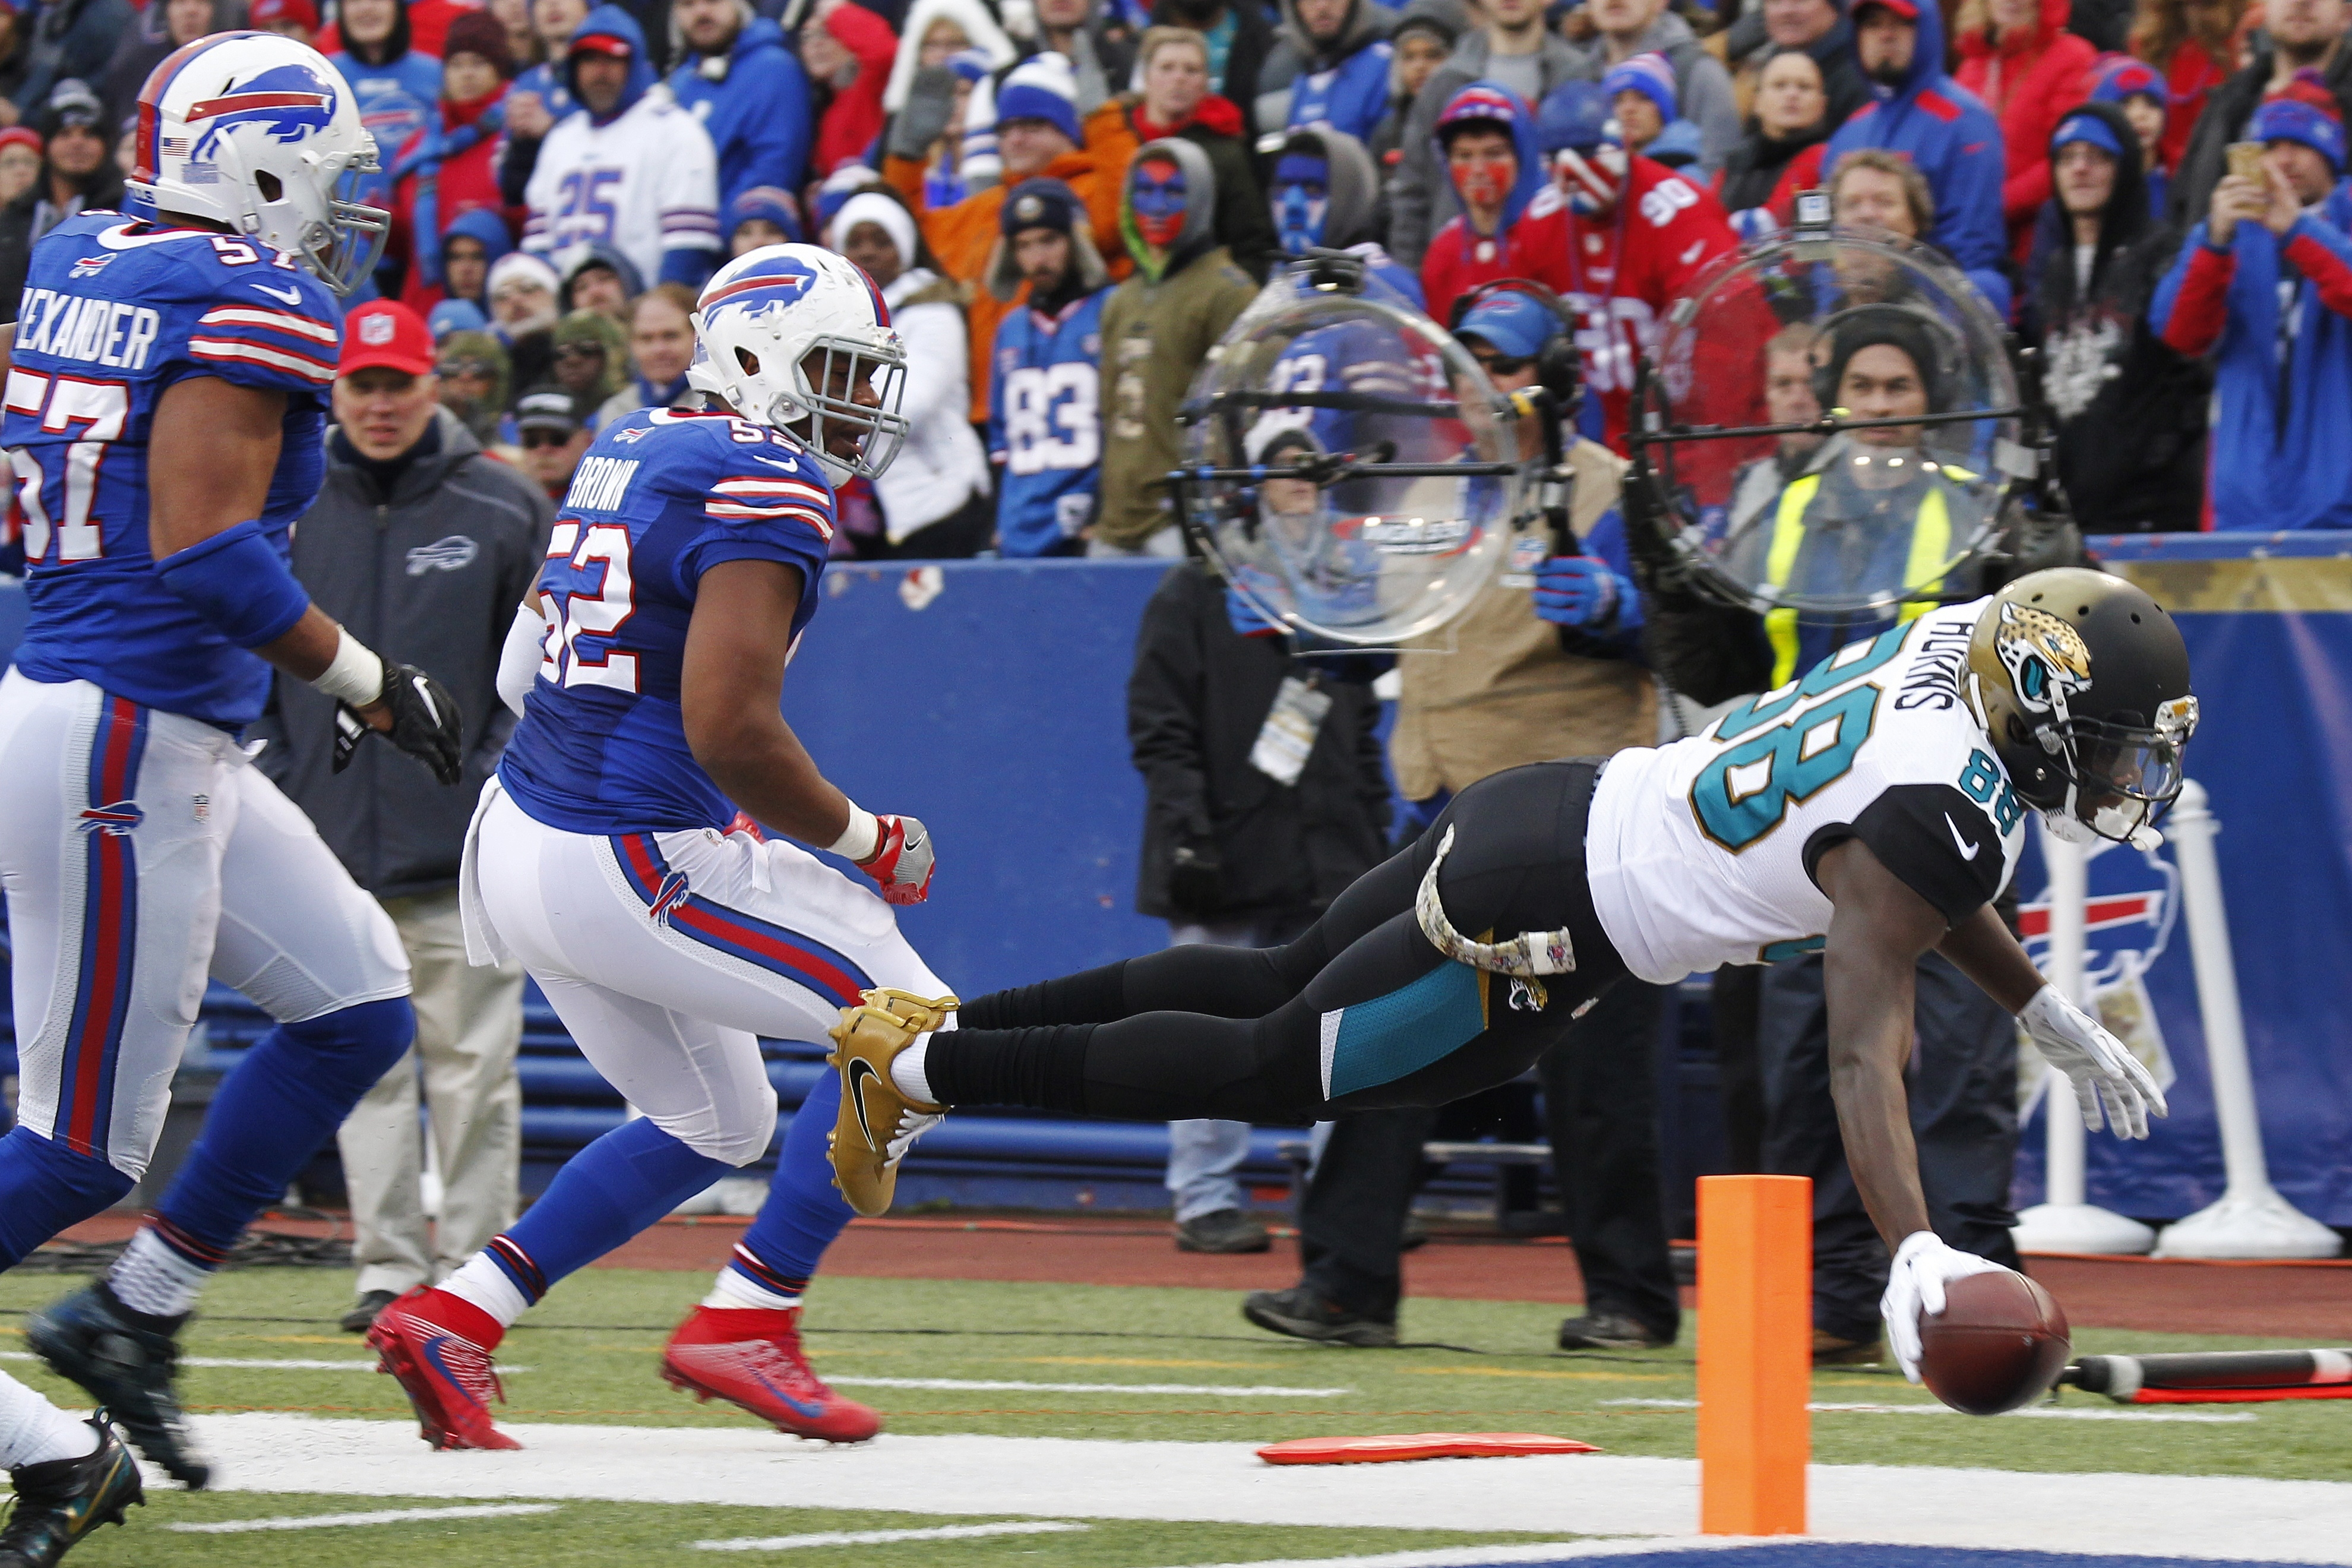 Jacksonville Jaguars wide receiver Allen Hurns (88) dives into the end zone as Buffalo Bills' Preston Brown (52) and Lorenzo Alexander (57) watch him during the second half of an NFL football game, Sunday, Nov. 27, 2016, in Orchard Park, N.Y. (AP Photo/Je